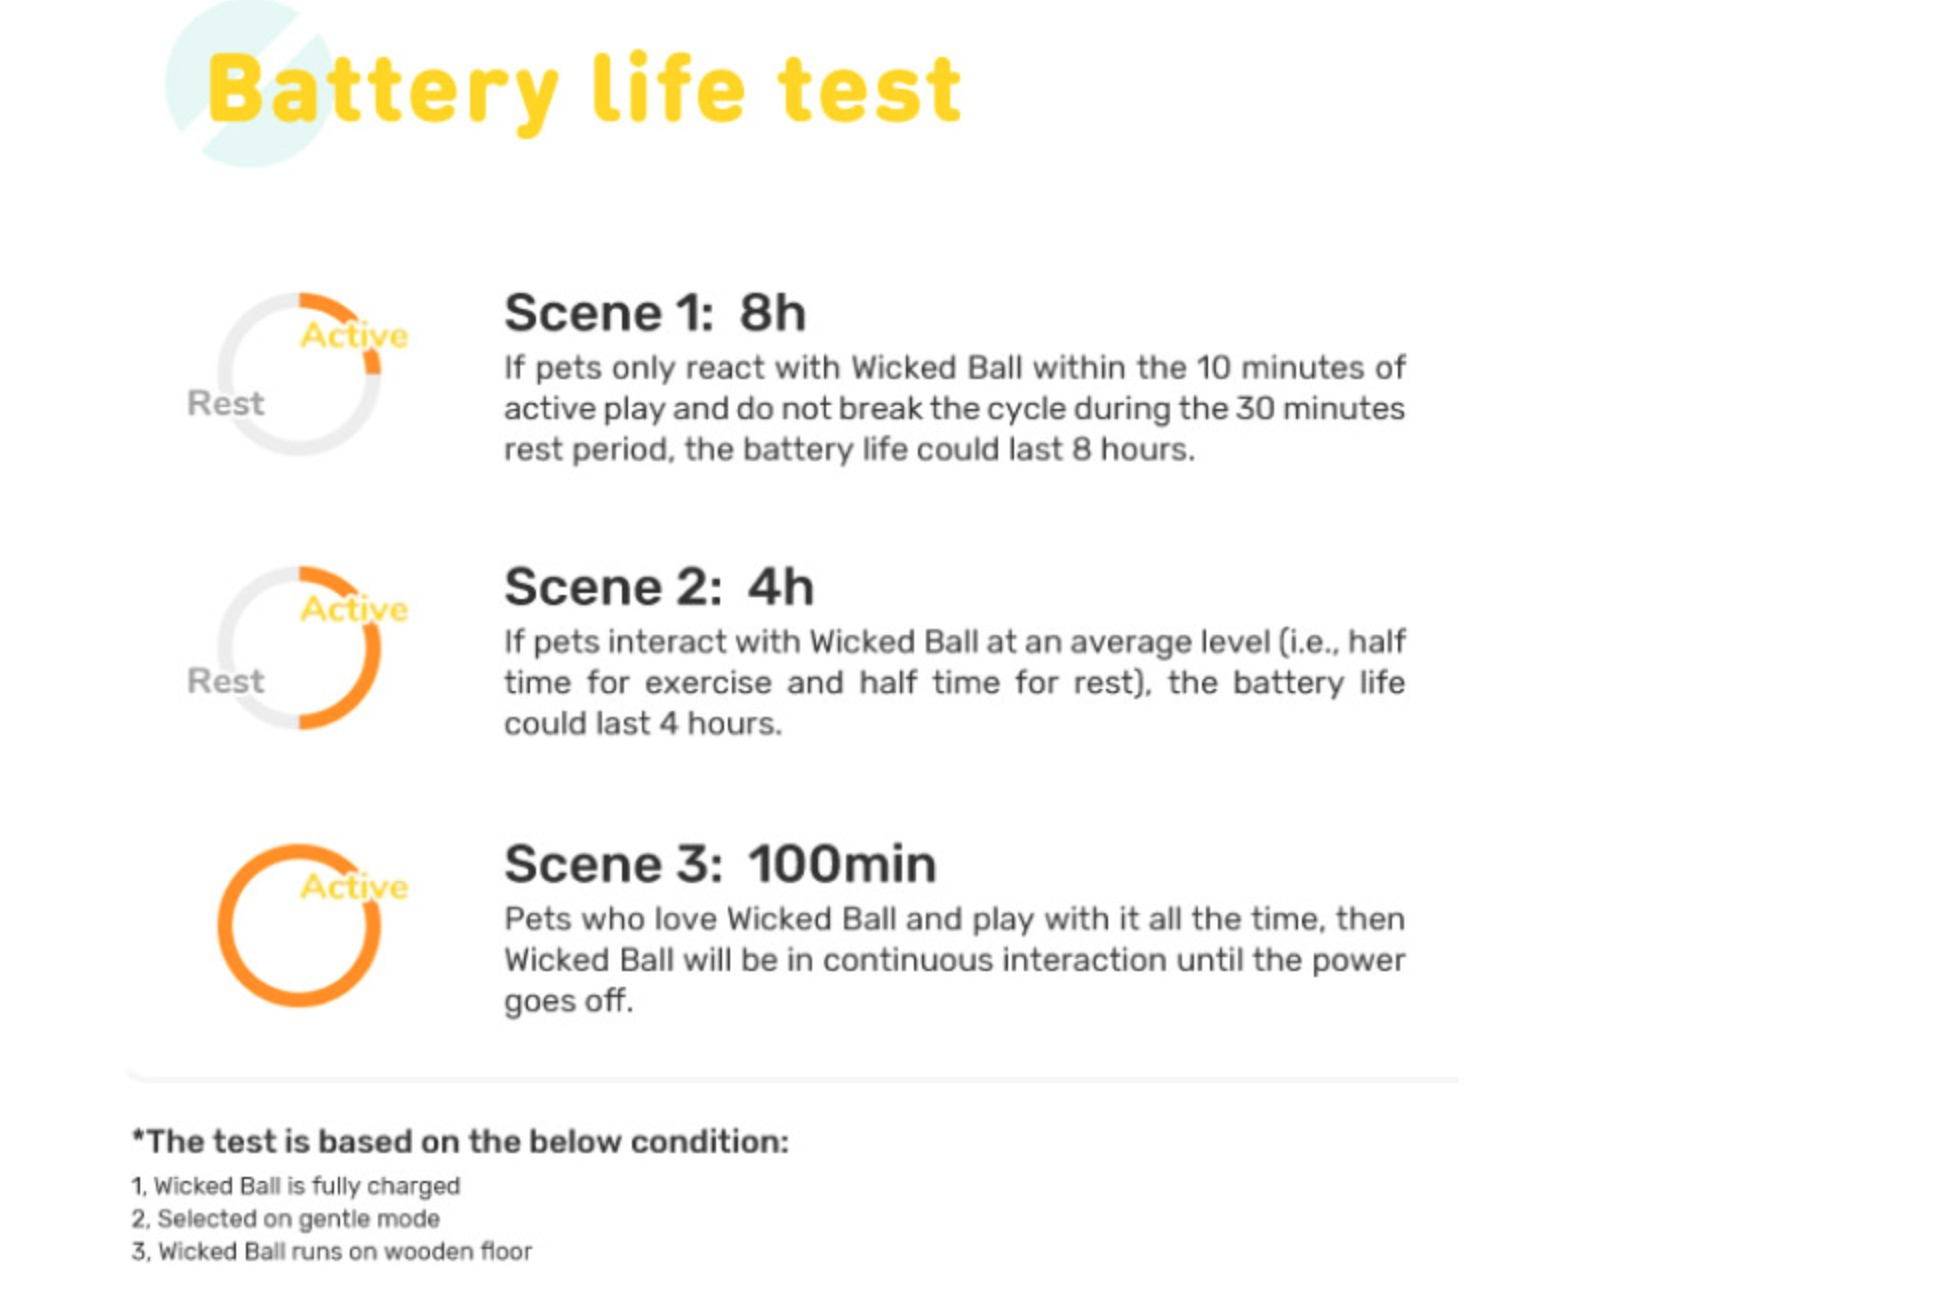 Wicked Ball battery life